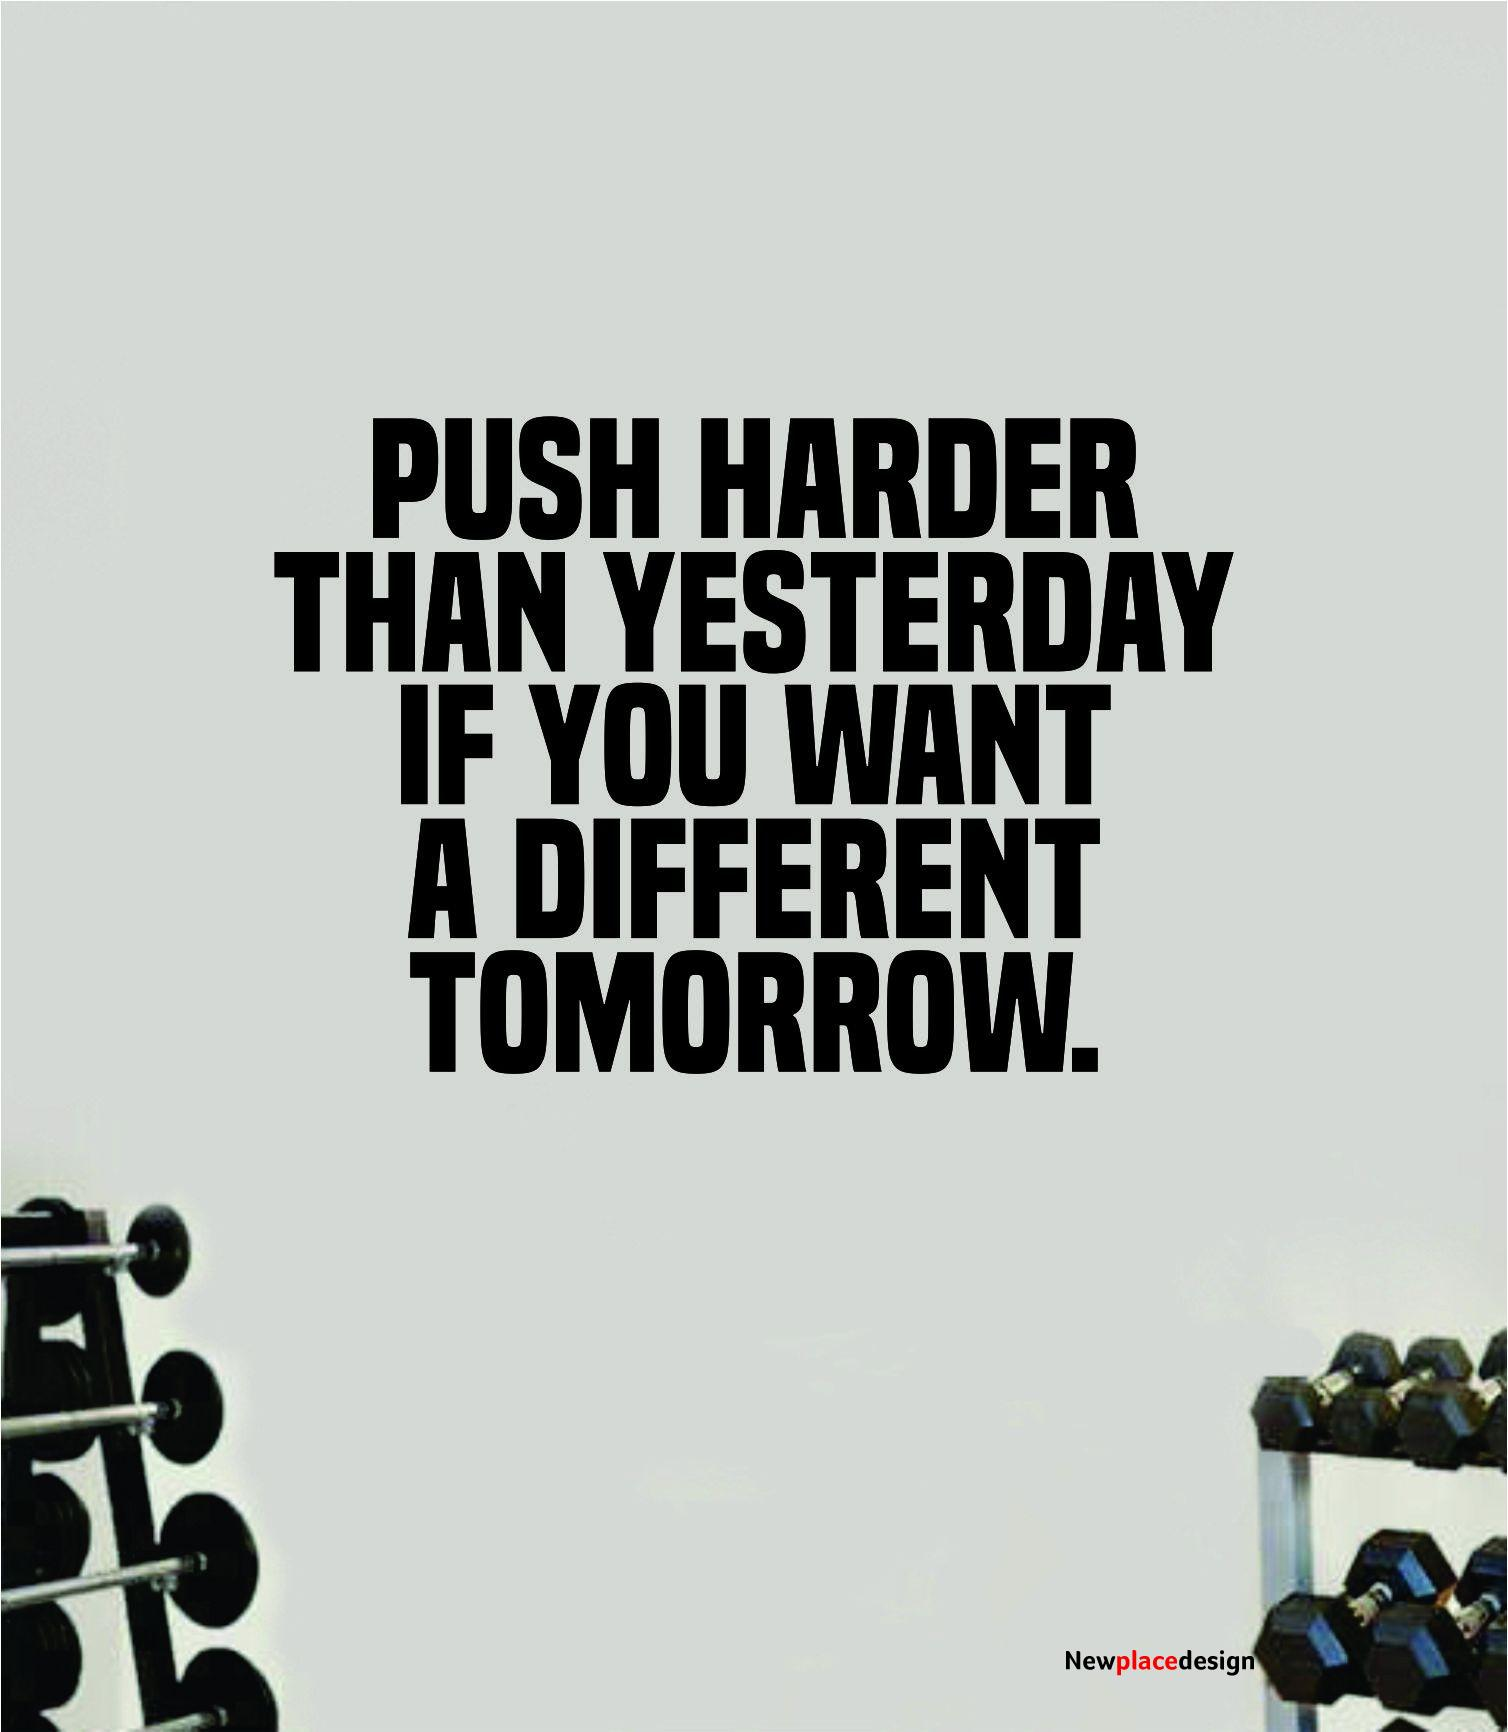 Push Harder than Yesterday V2 Wall Decal Home Decor Bedroom Room Vinyl Sticker Art Teen Work Out Quote Gym Girls Train Fitness Lift Strong Inspirational Motivational Health - grey